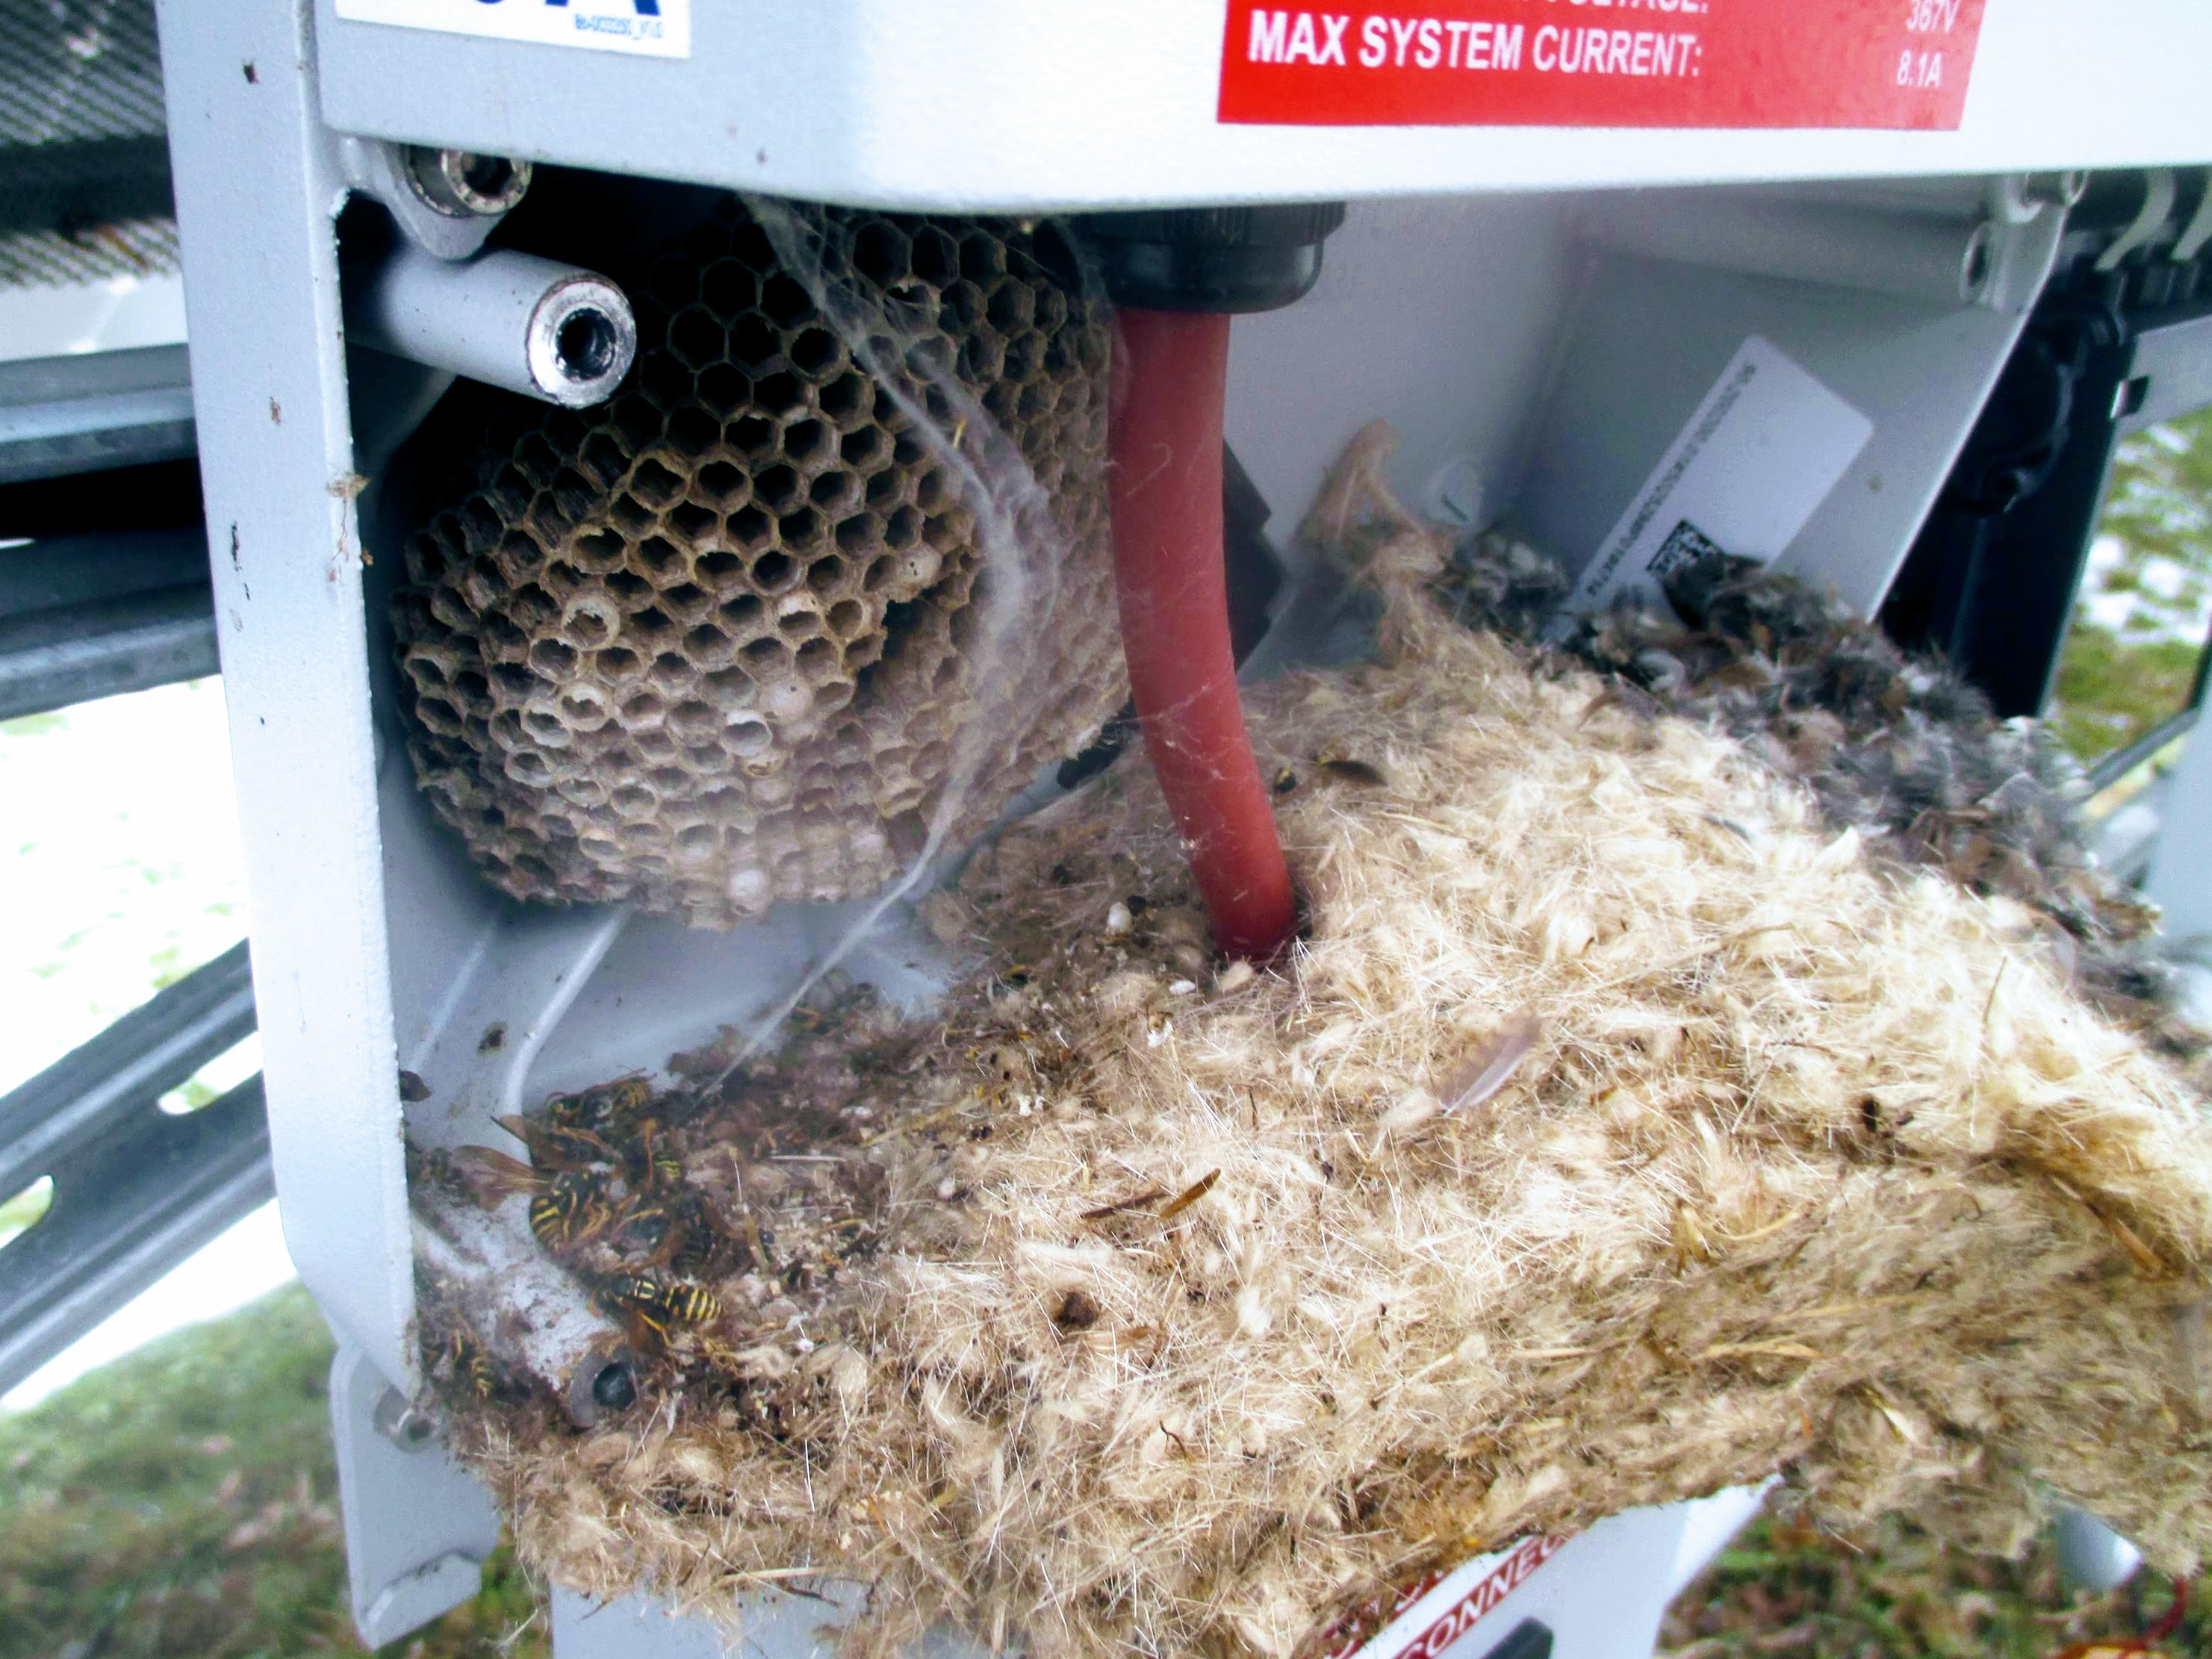 mice AND wasps co-habitating inside an inverter